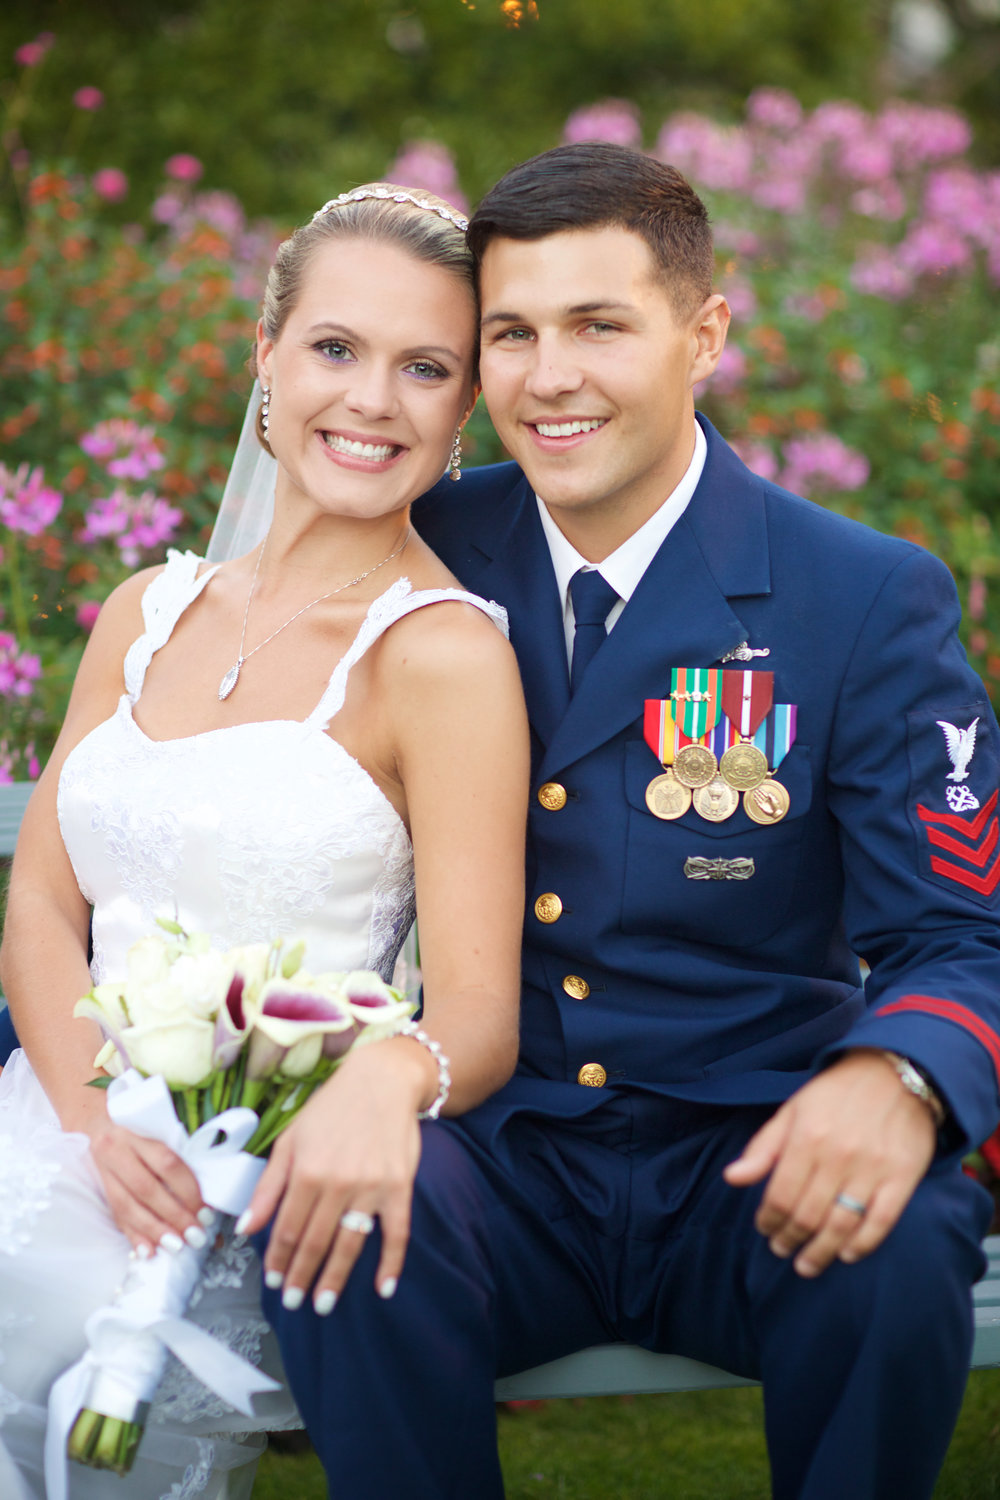 hollingsworth_bride_groom_ 14.jpg